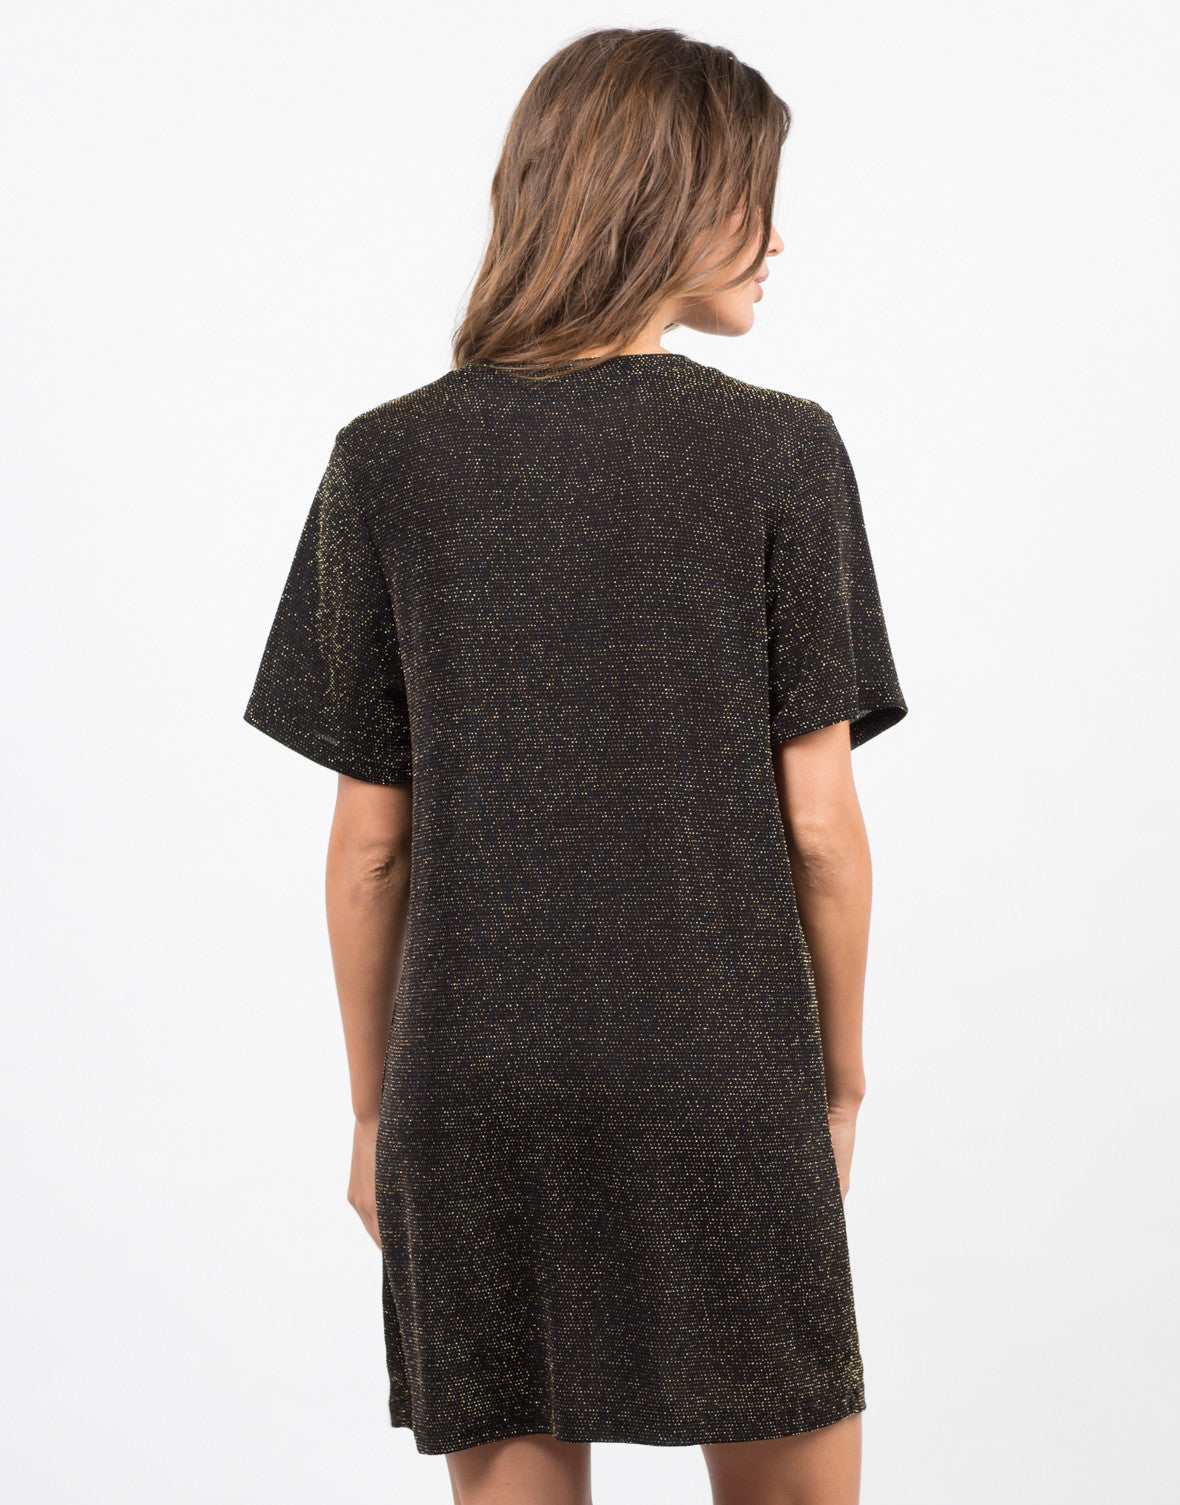 Back View of Starry Night T-Shirt Dress